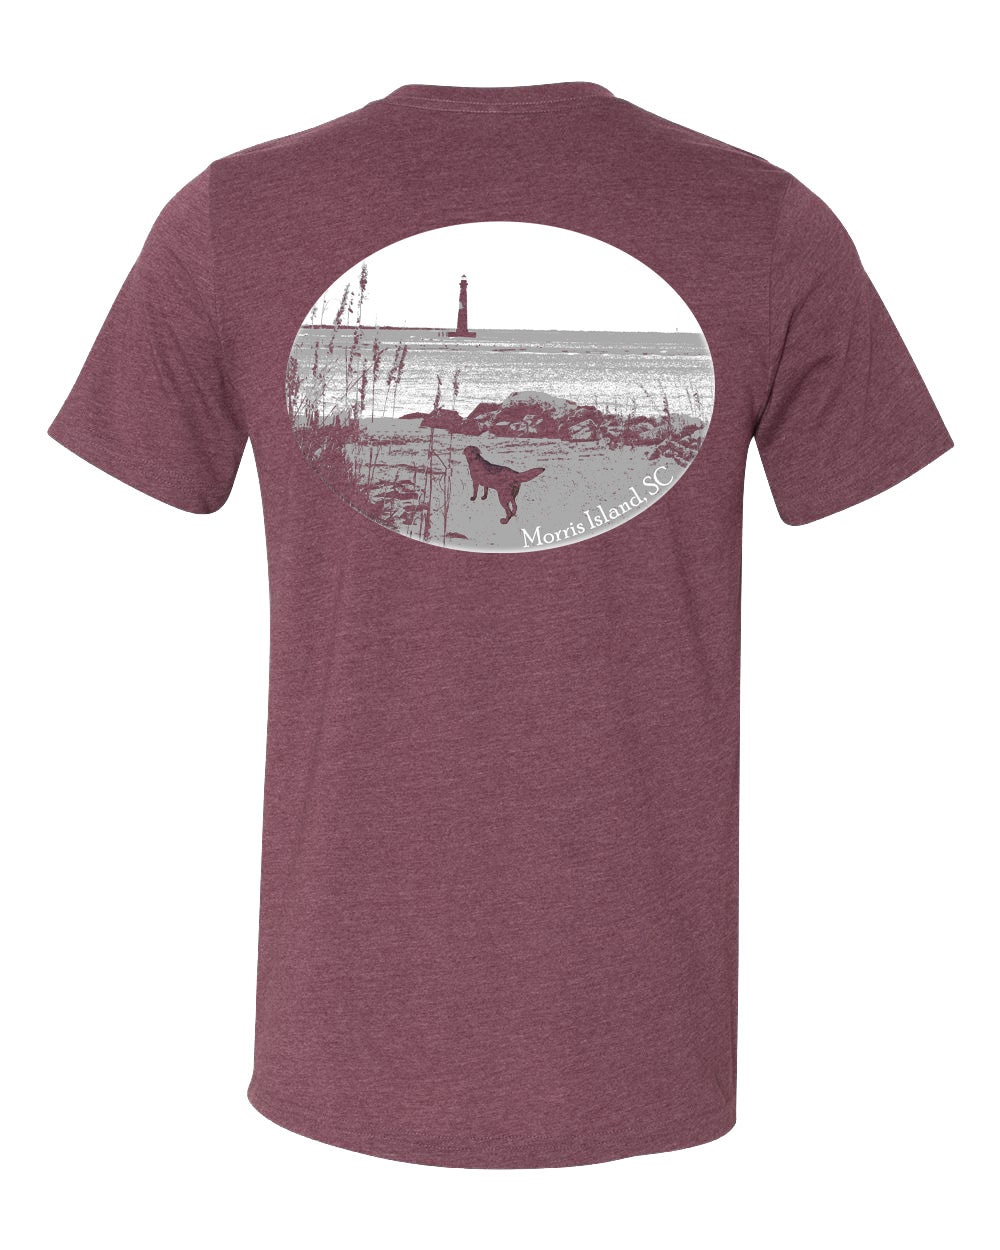 Morris Island Short Sleeve T-shirt